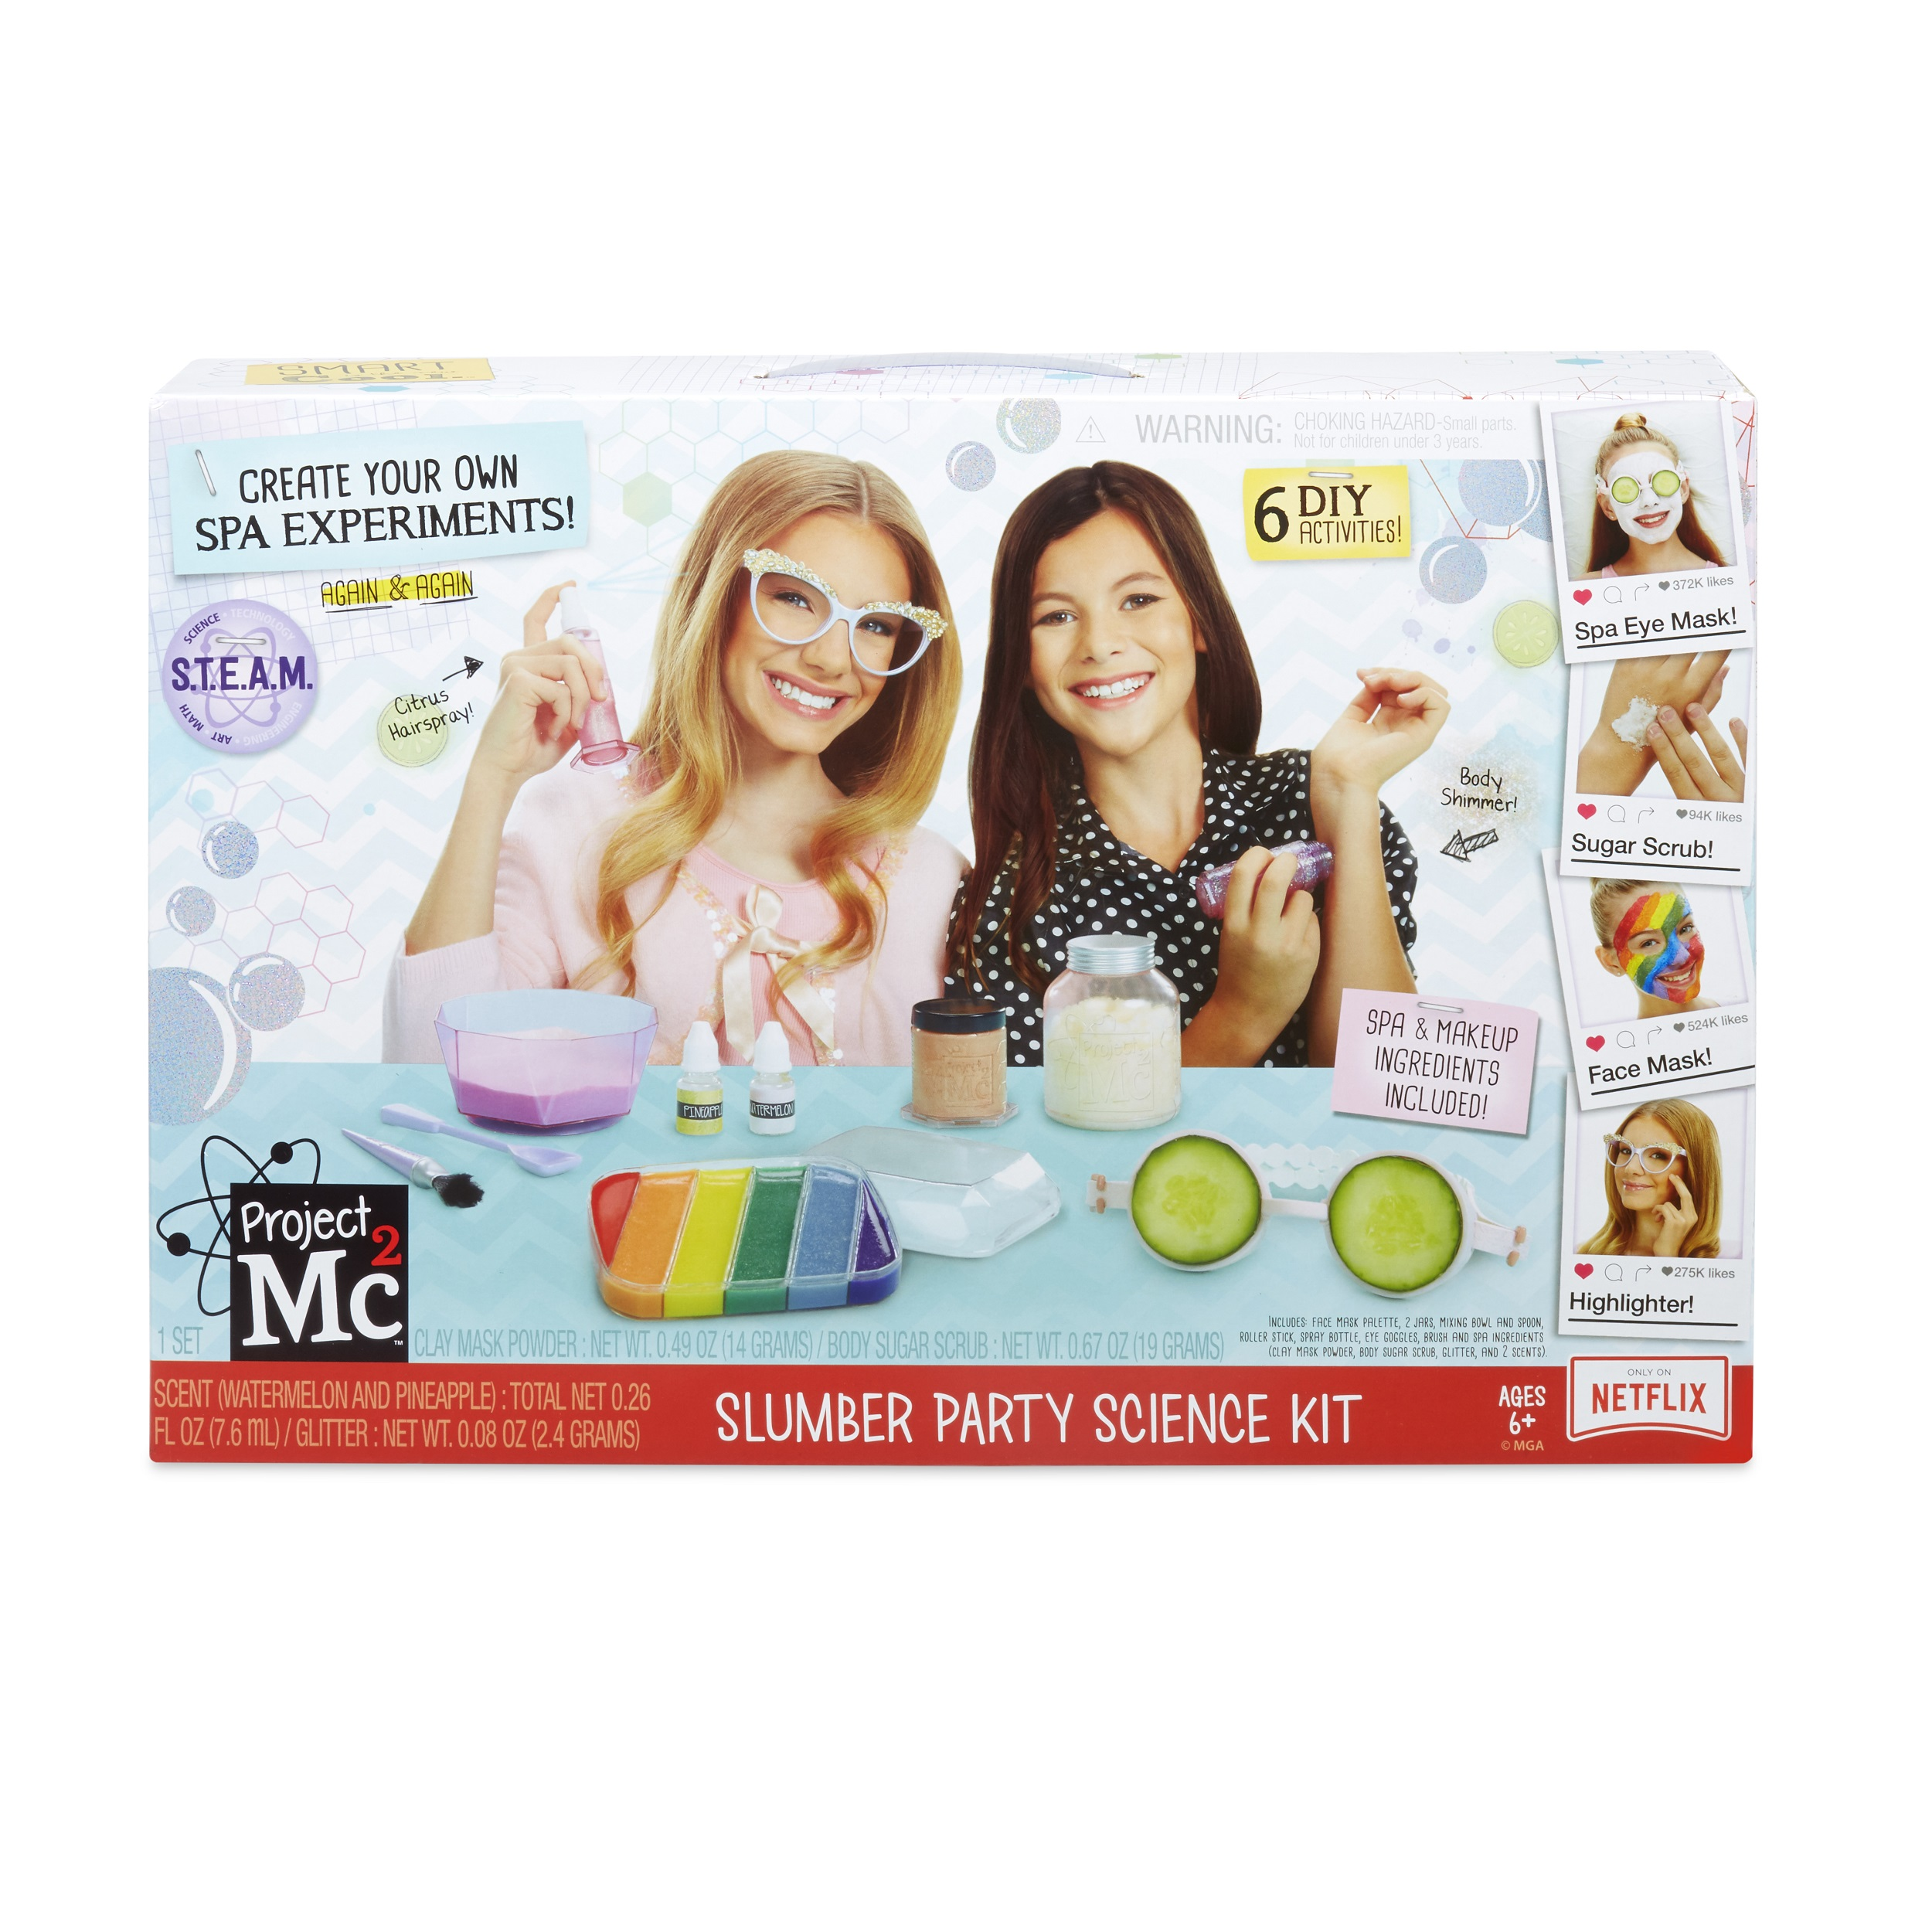 Project Mc2 Slumber Party Science Kit to Create Your Own Spa Treatments